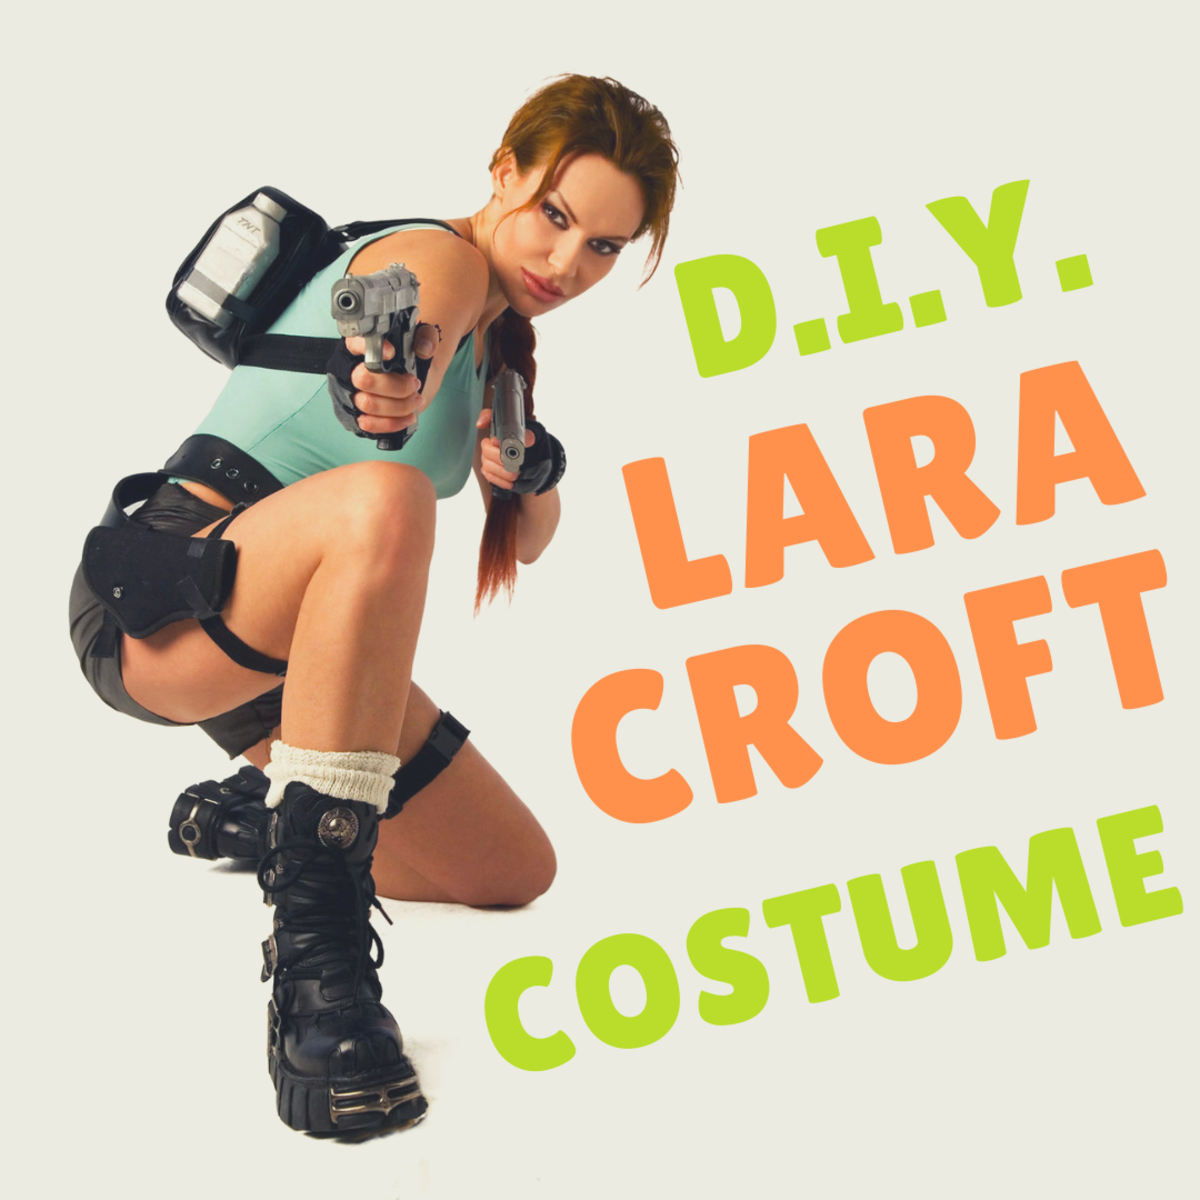 You can buy a Lara Croft costume online, but you can also create your own outfit.